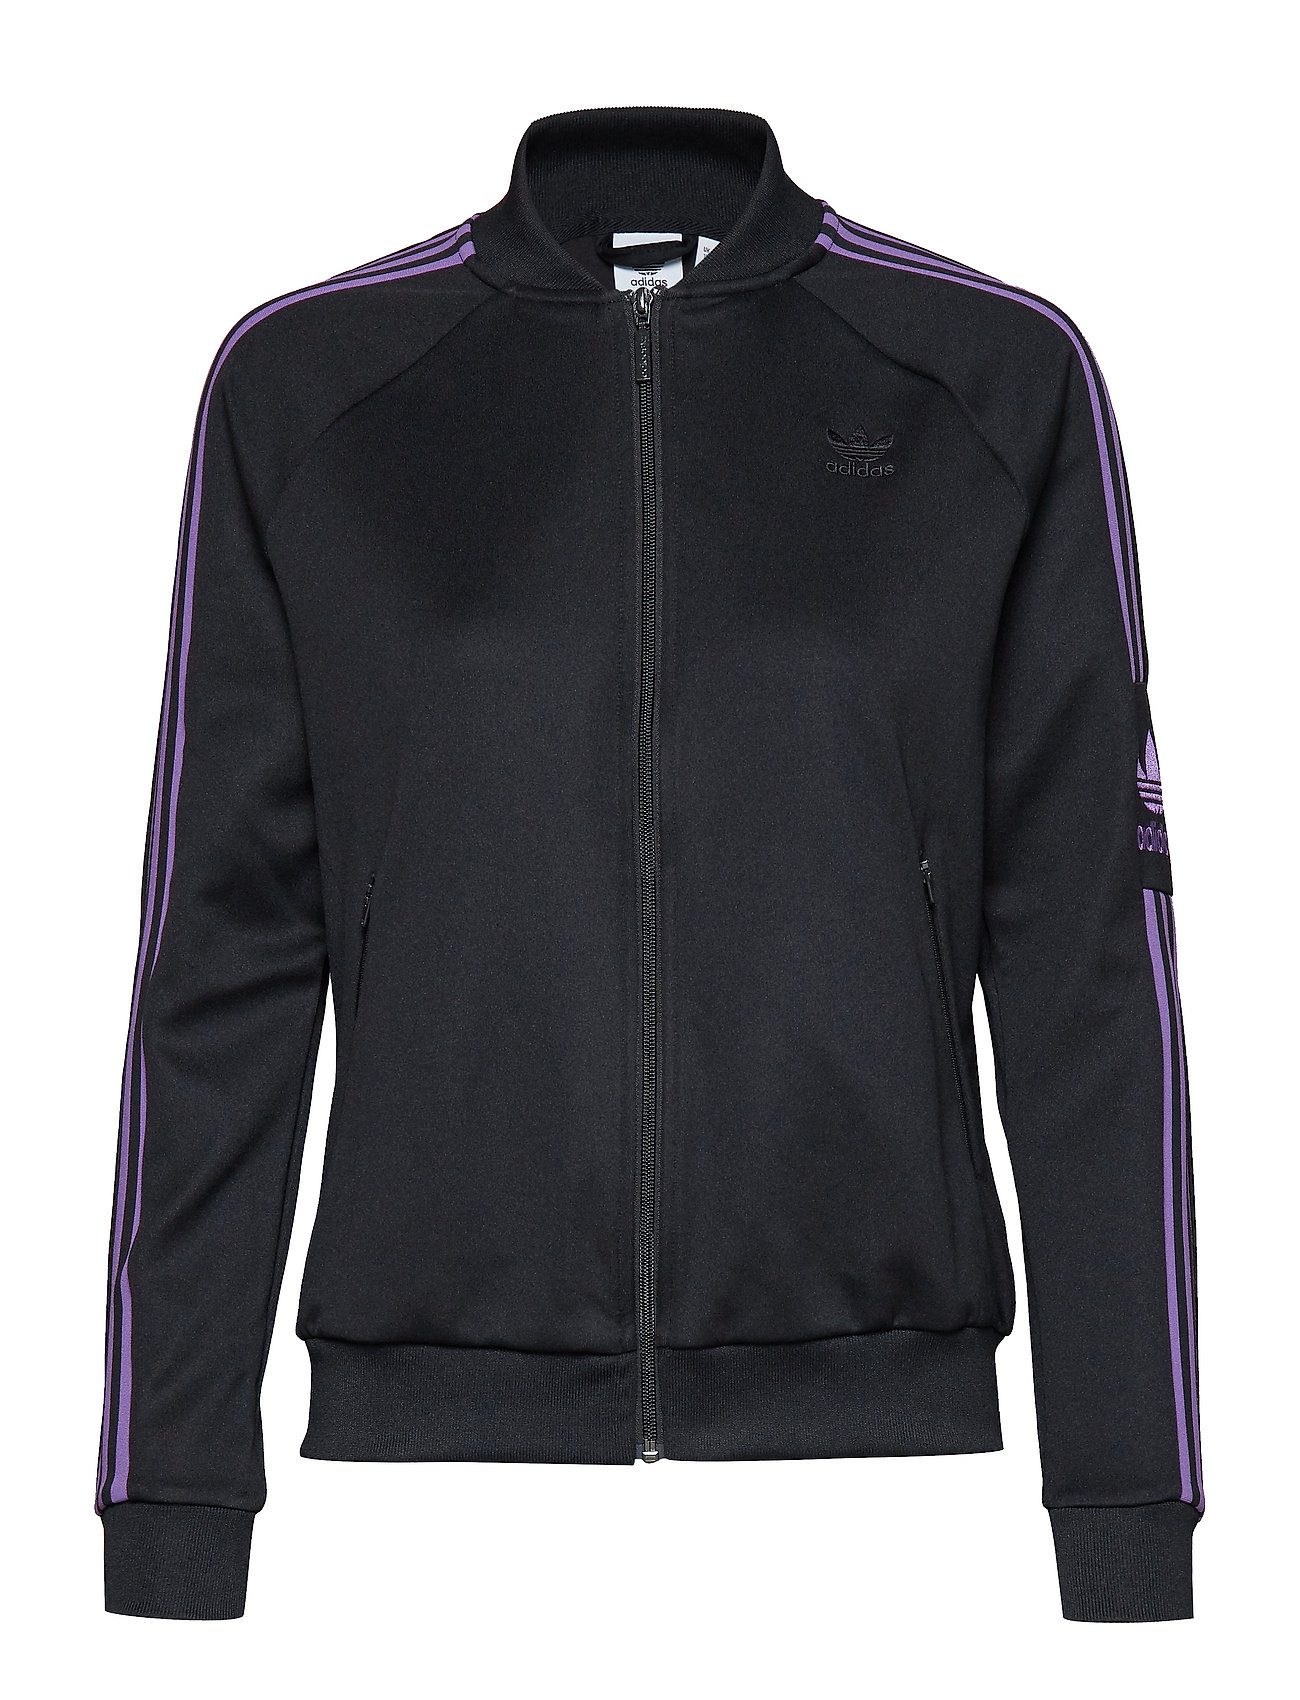 adidas Originals SST TRACK TOP - BLACK